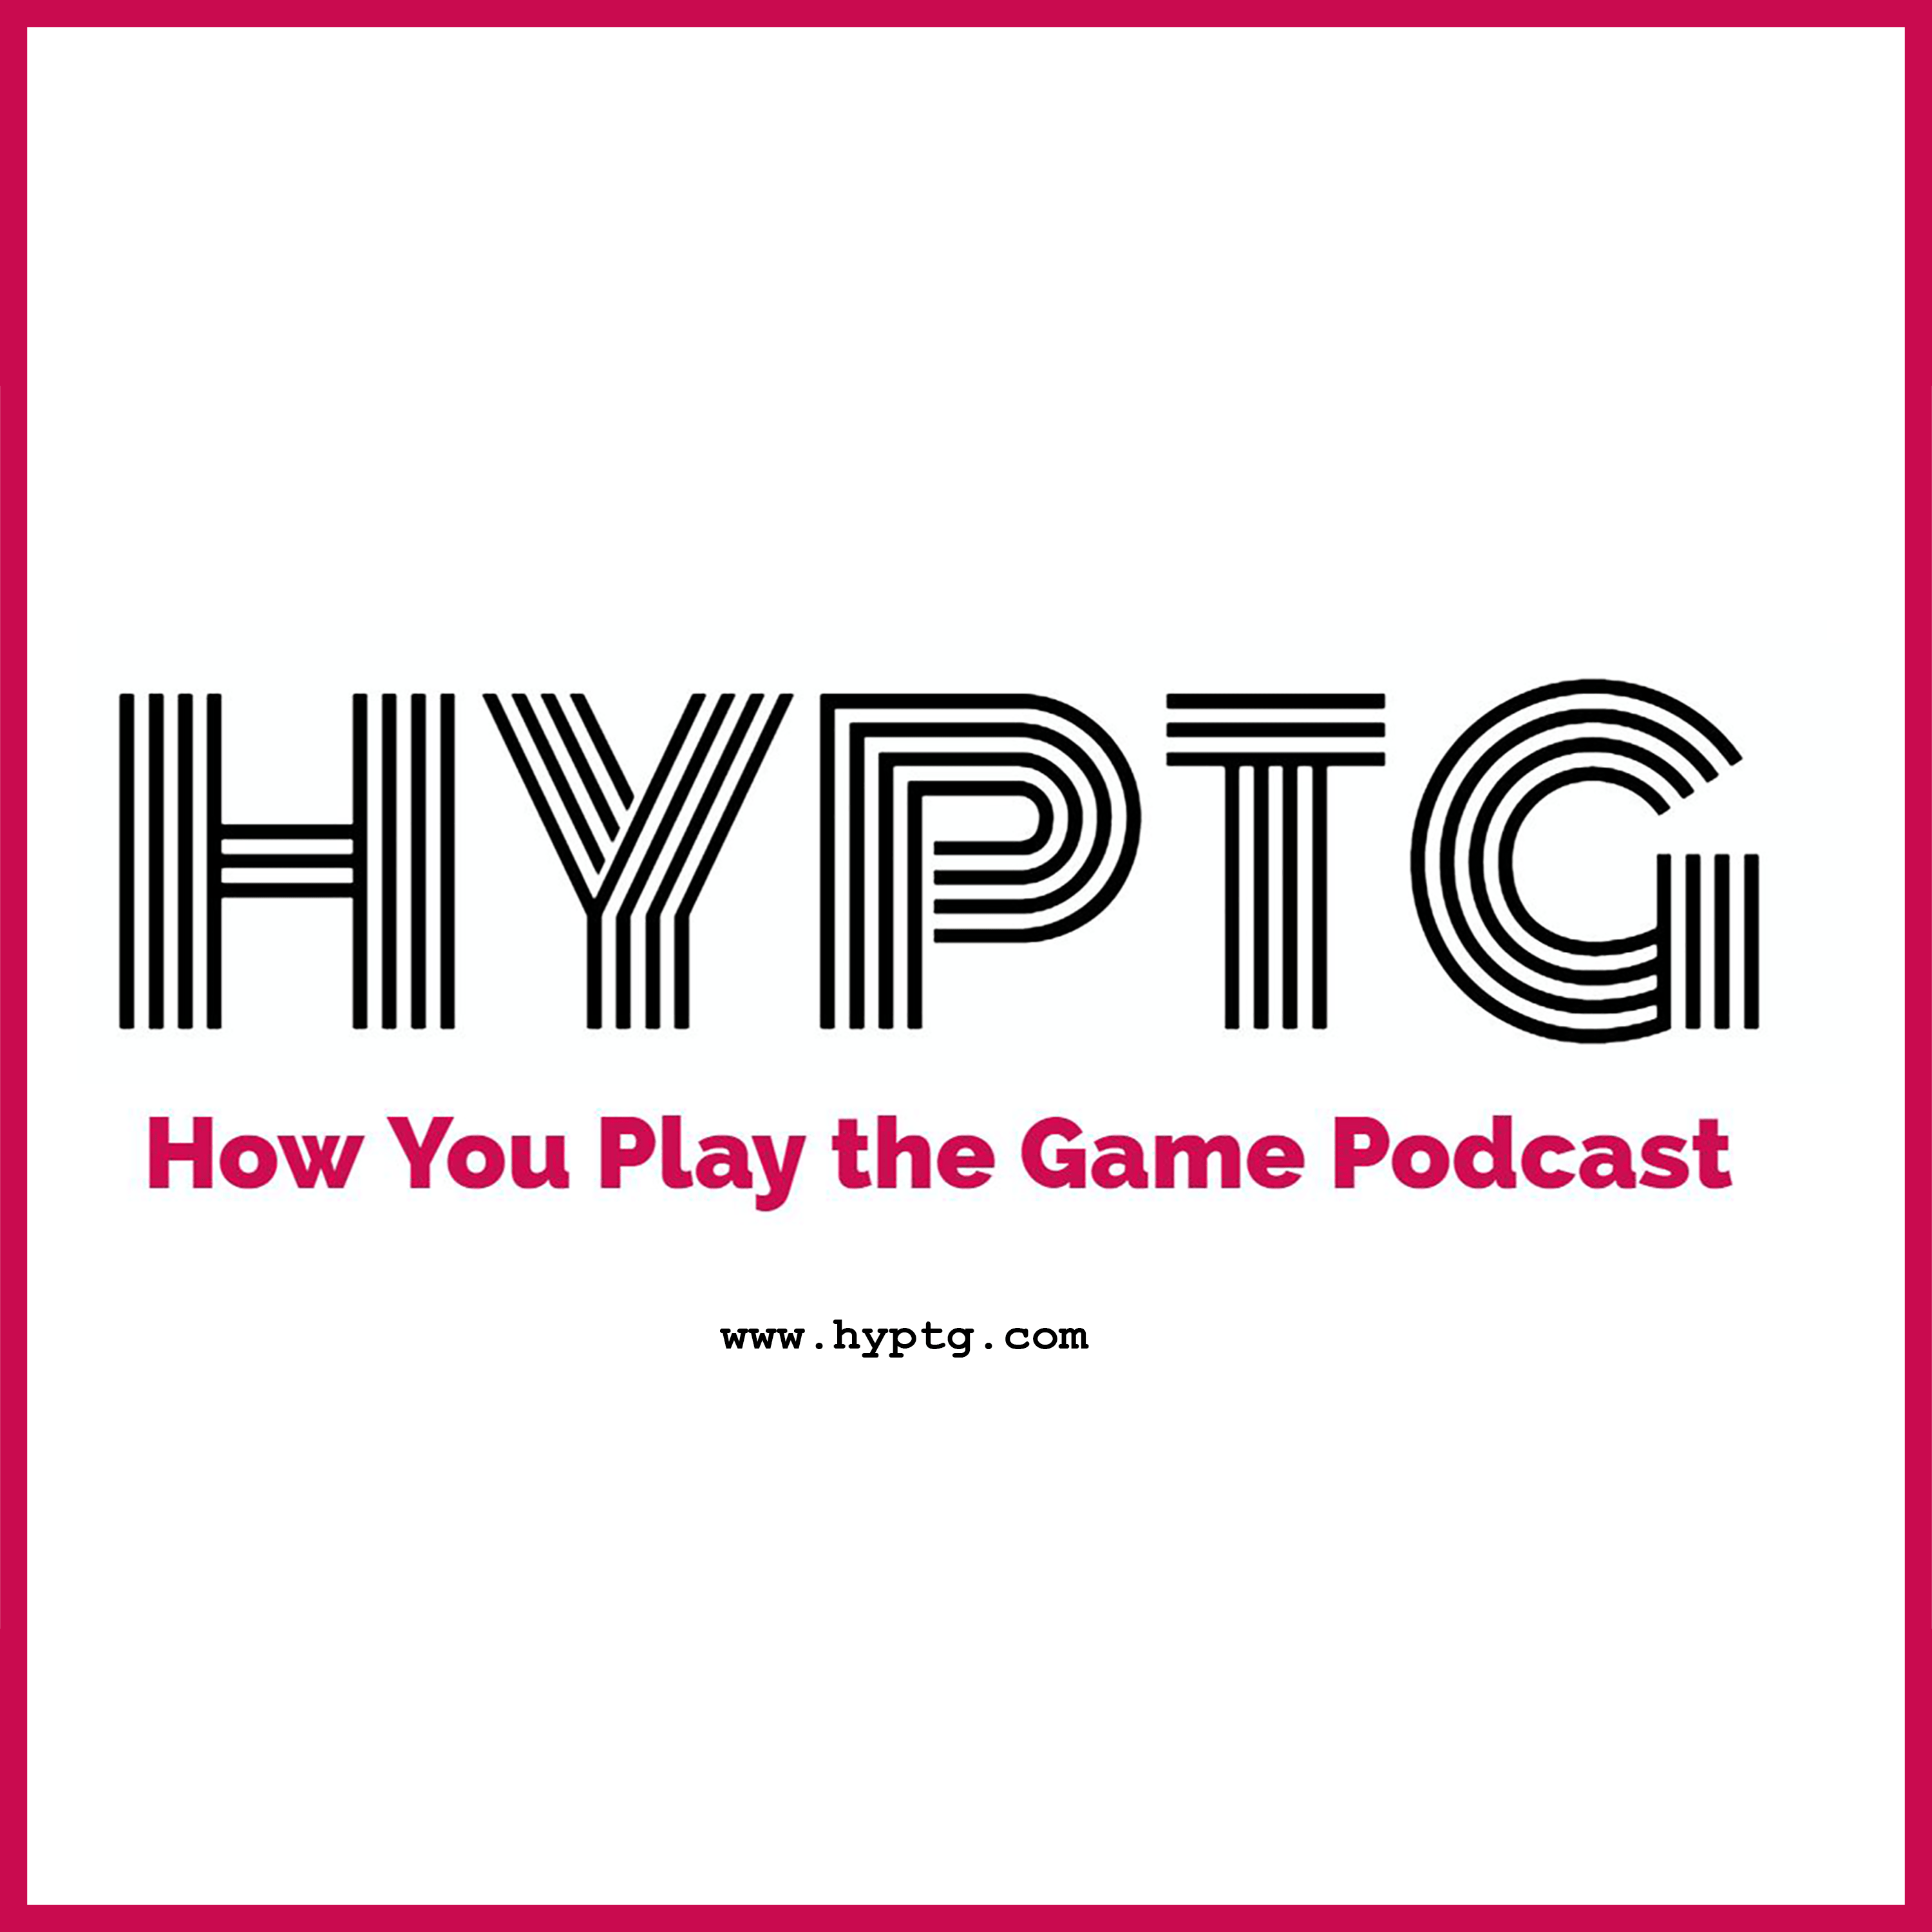 HYPTG - How You Play the Game logo